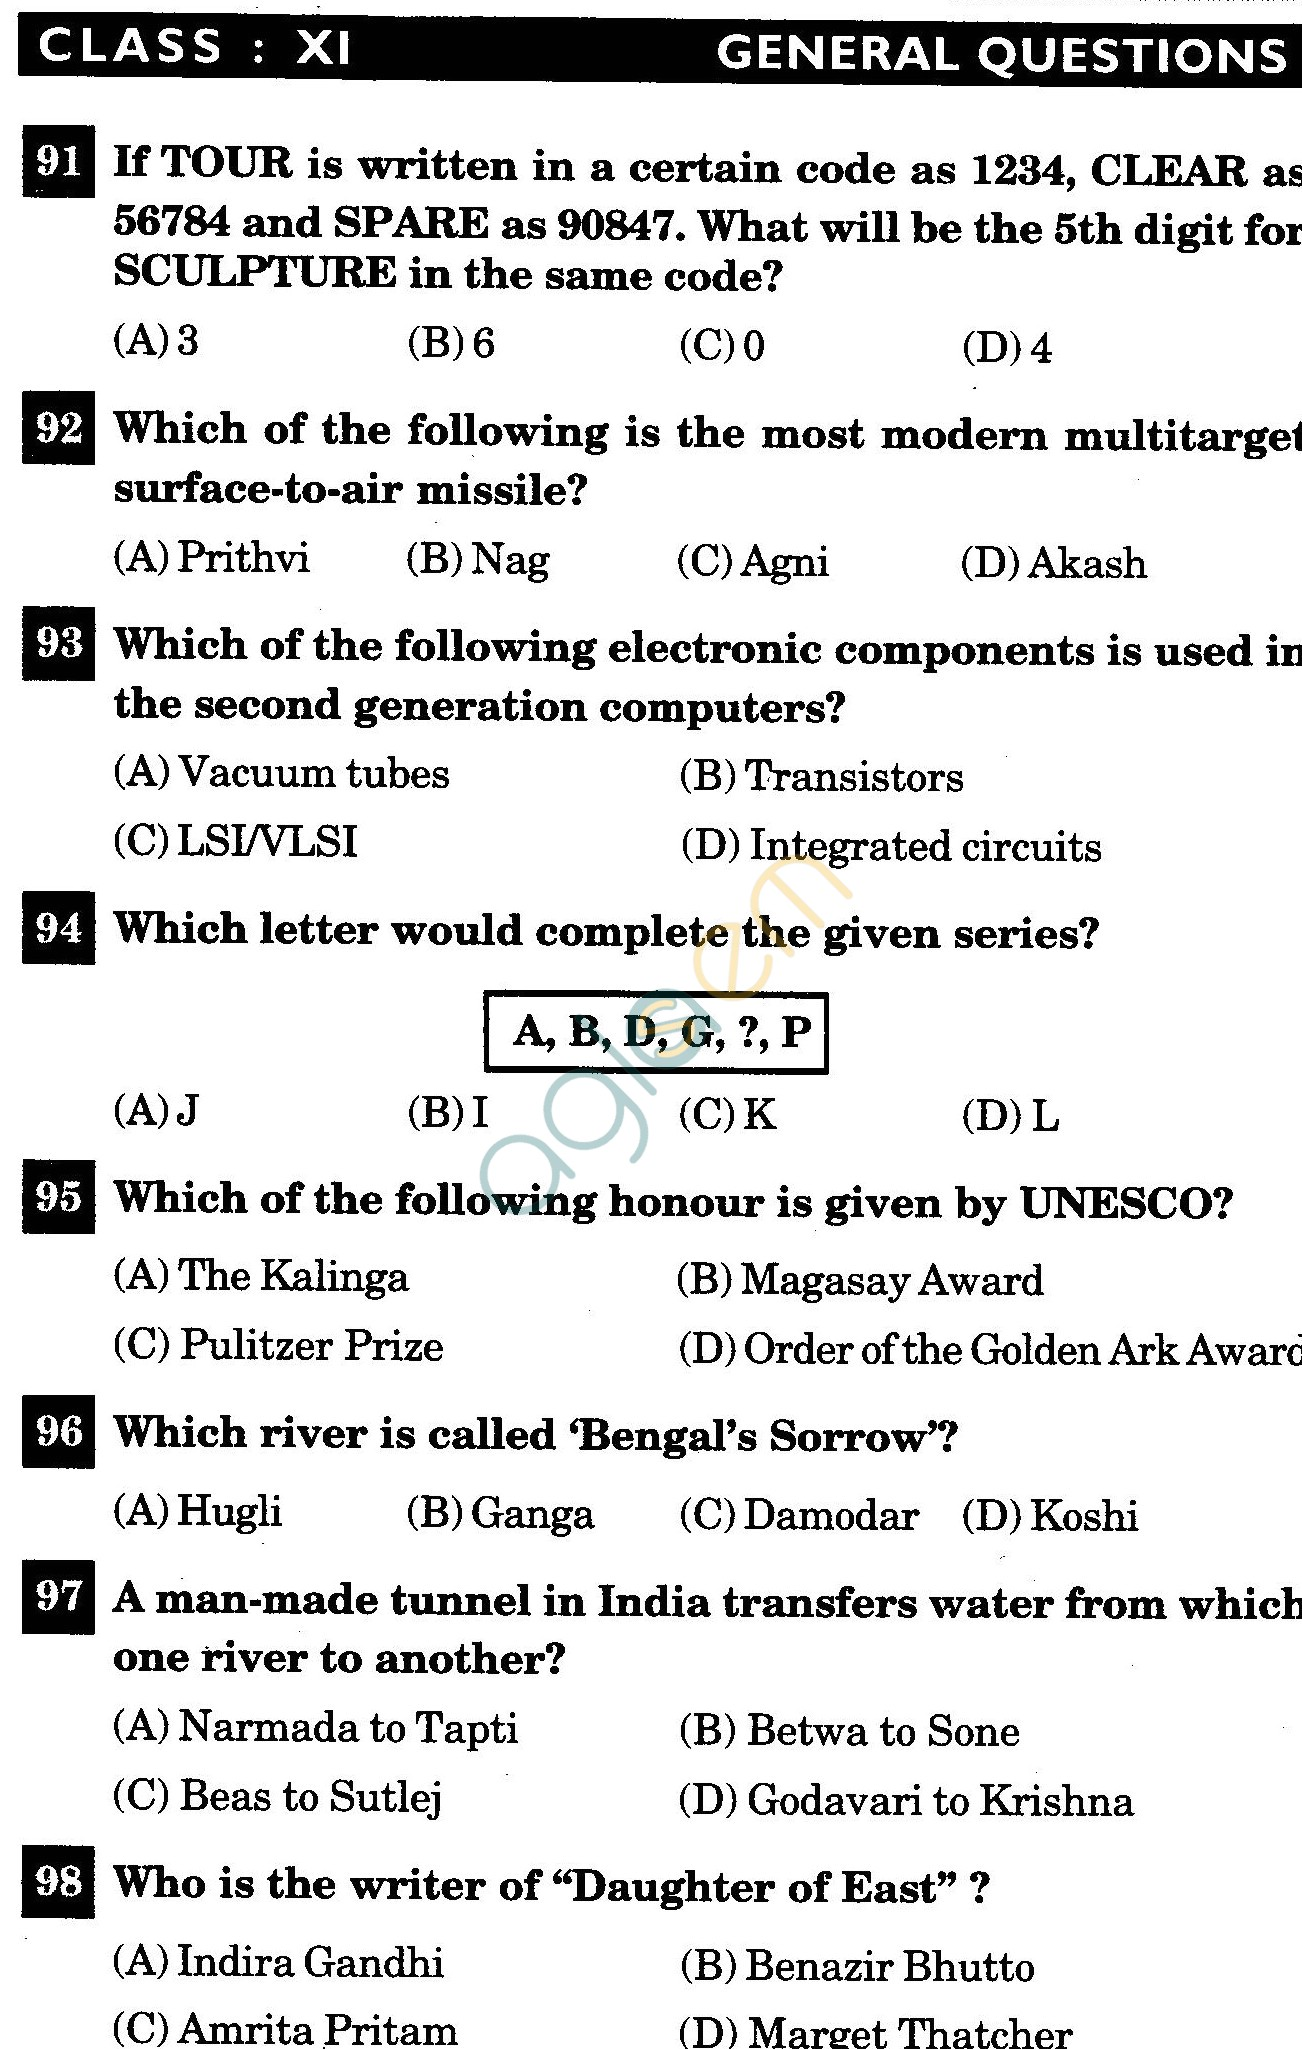 NSTSE 2011 Class XI PCM Question Paper with Answers - General Knowledge